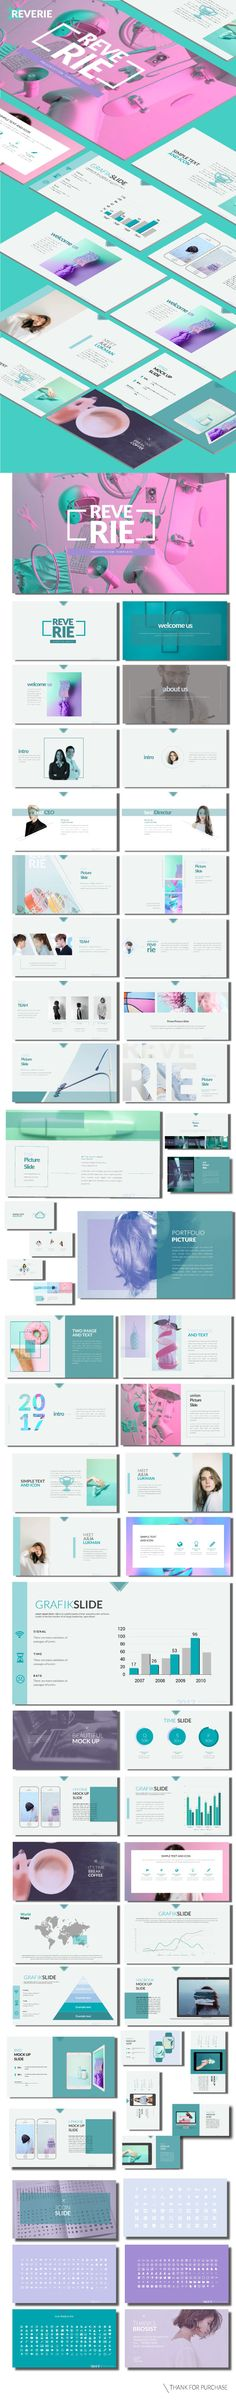 Reverie - Multipurpose Presentation Template - Business PowerPoint Templates